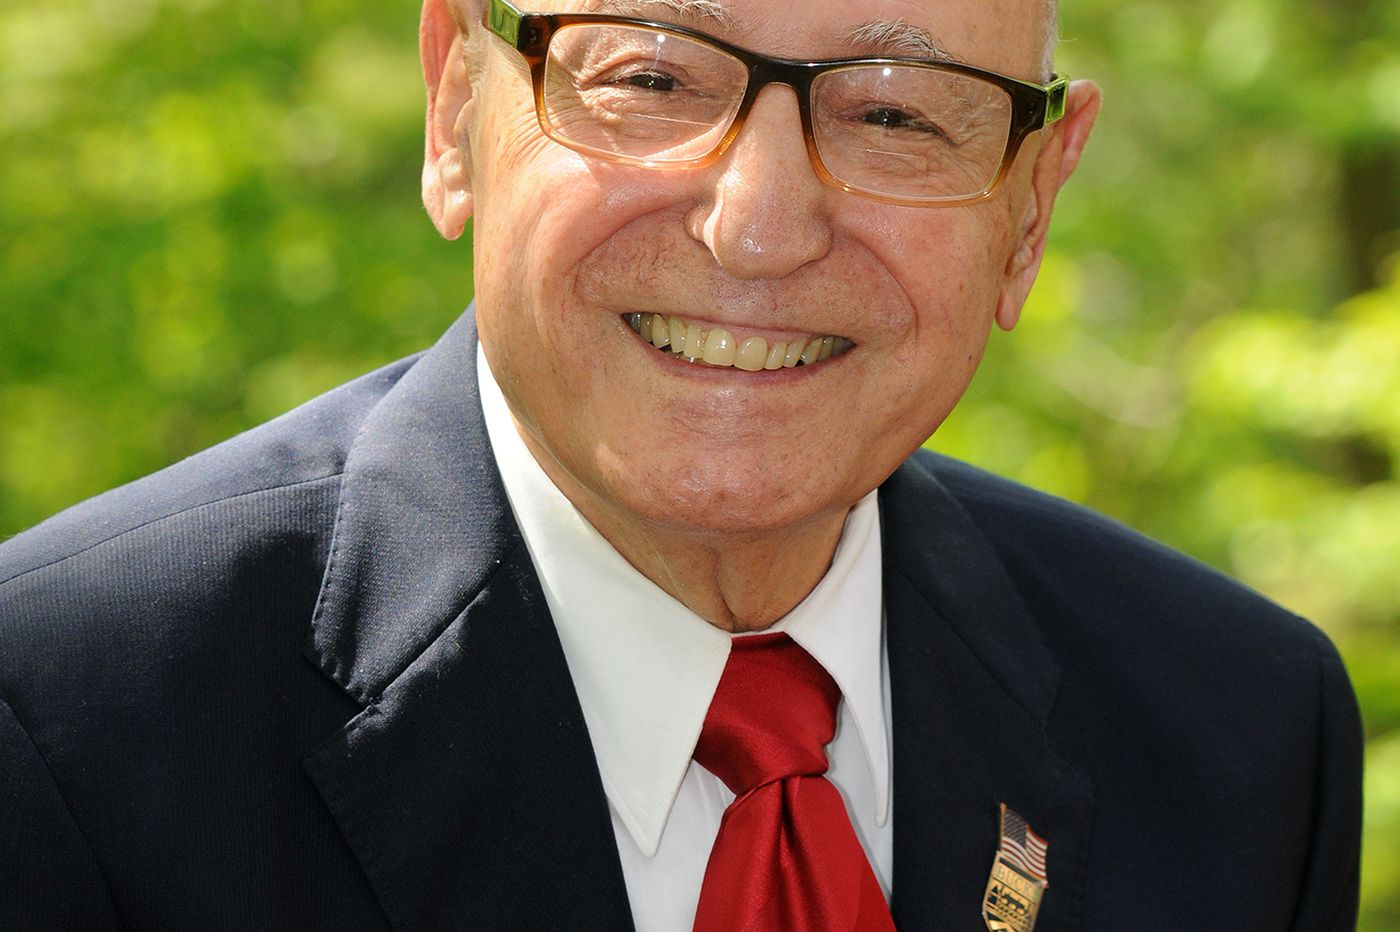 Frank J. Fazzalore, 96, financial consultant, WWII vet, and Bucks County Community College trustee